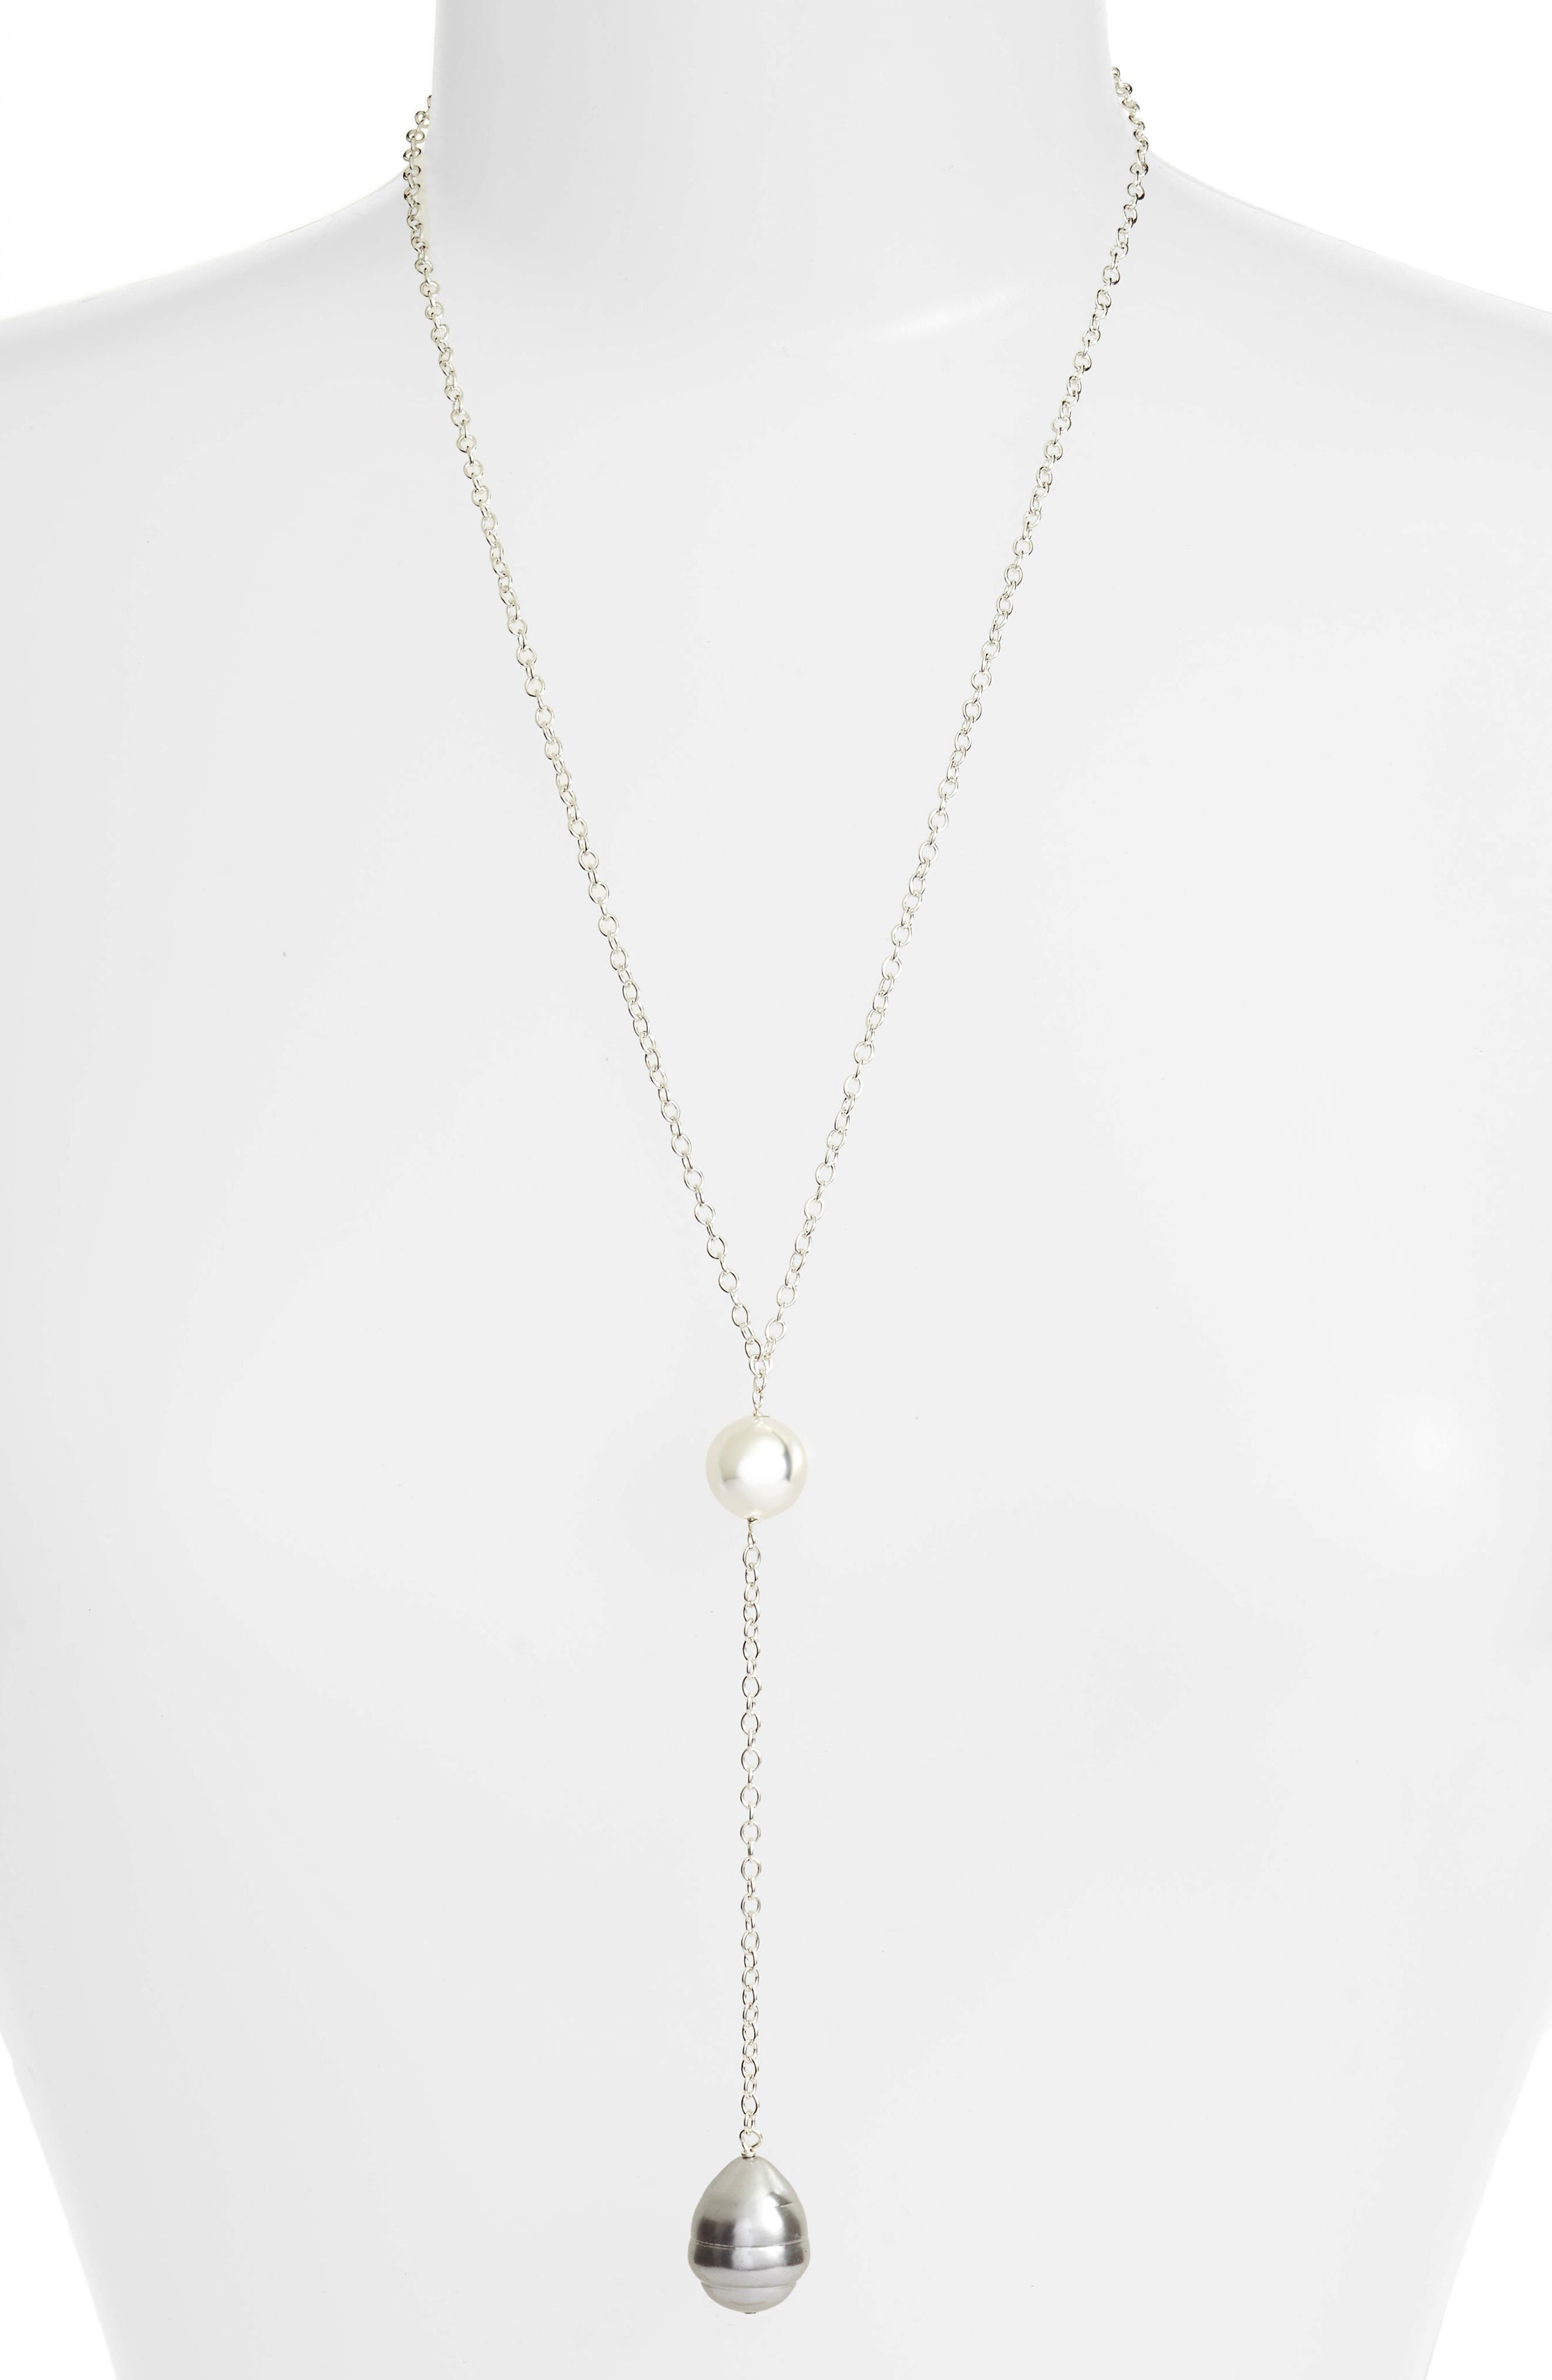 Shell Pendant Long Chain Y-Necklace,                             Main thumbnail 1, color,                             Silver